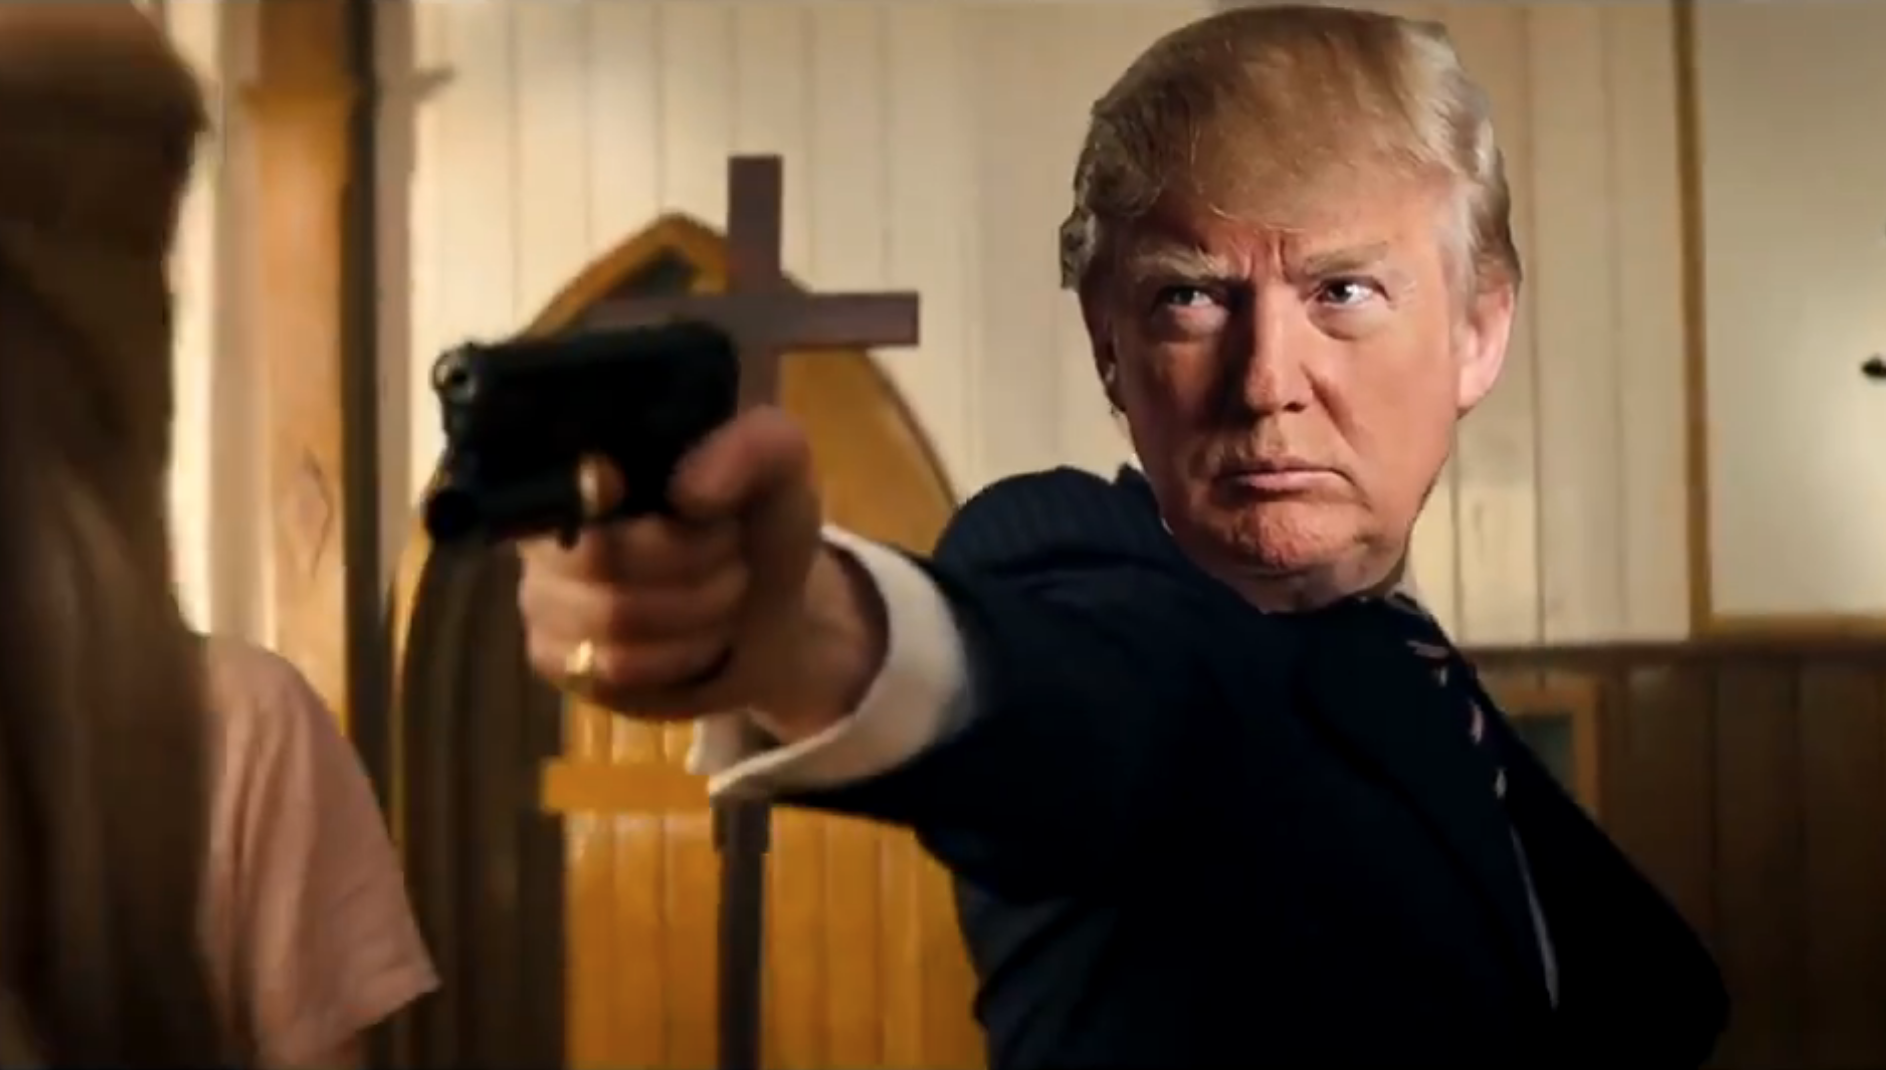 Macabre video of Donald Trump murdering media, political rivals shown at Trump resort